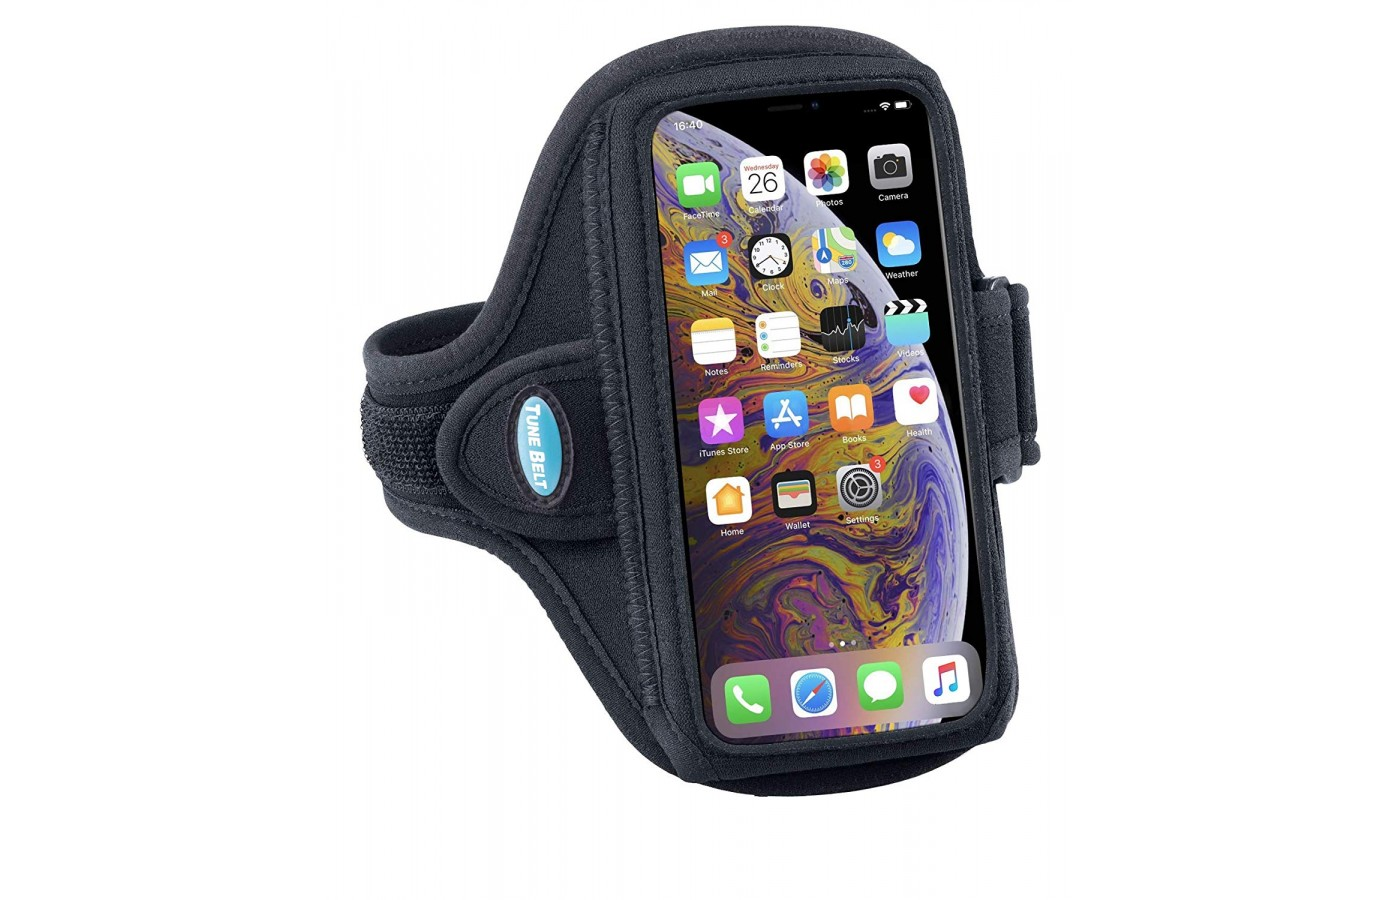 Tune Belt Armband feature